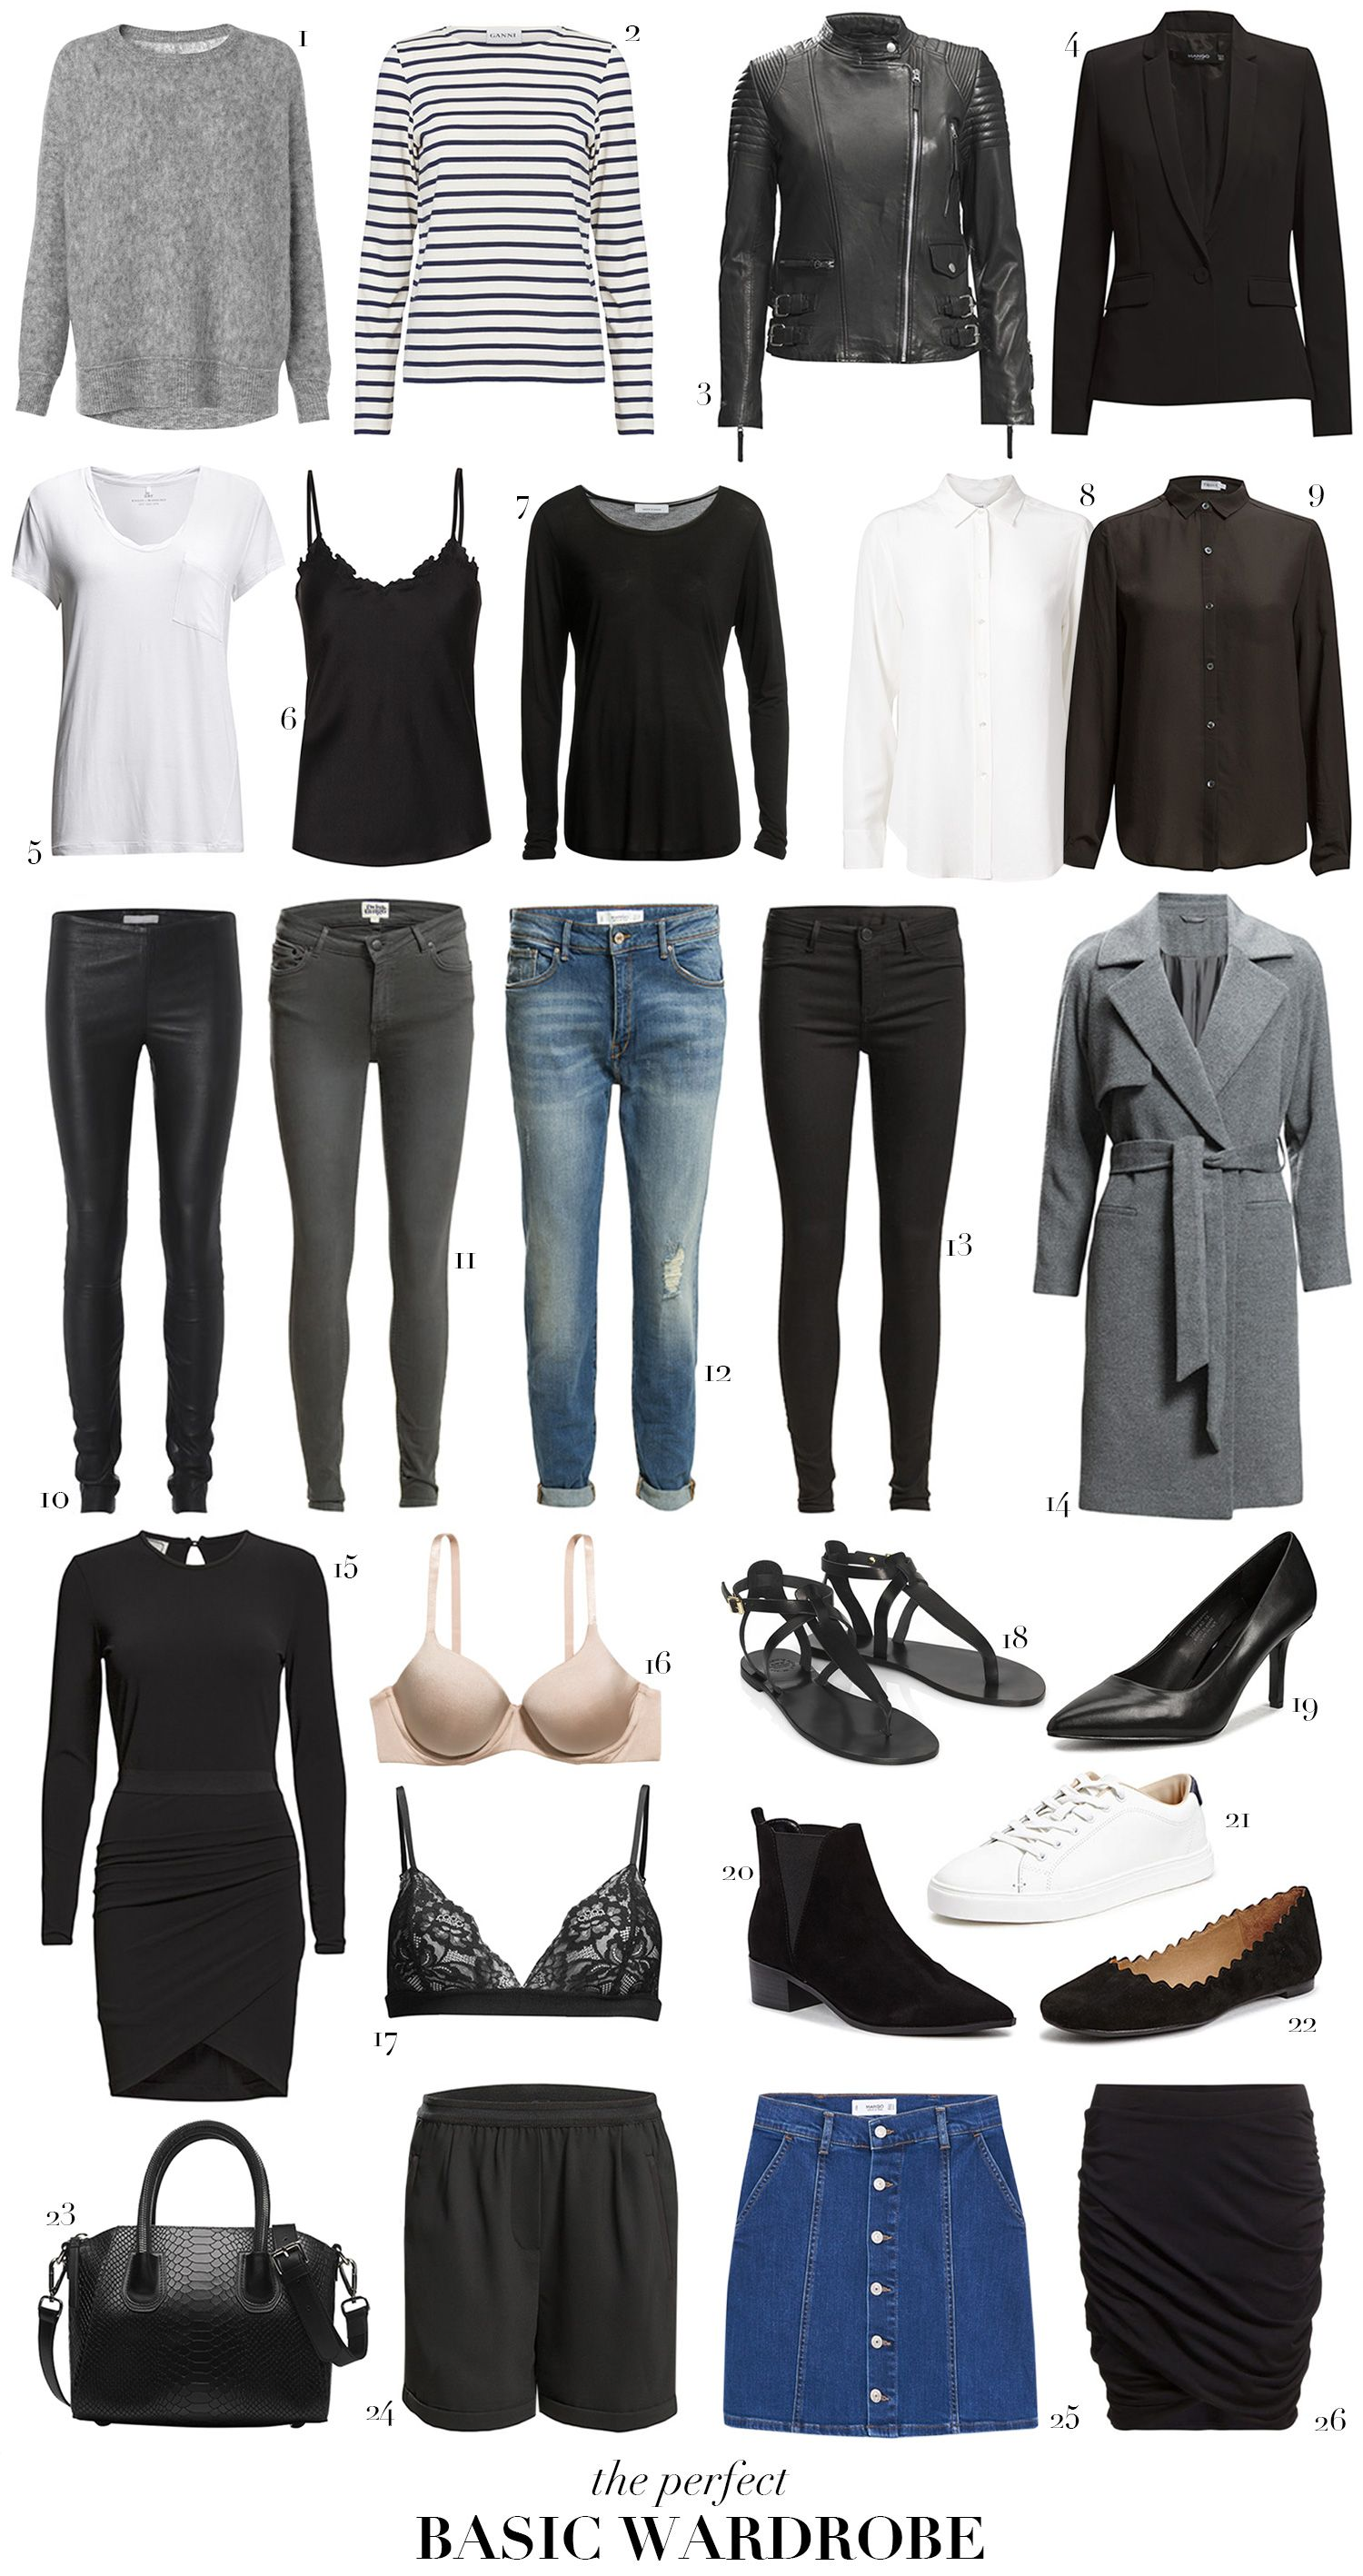 Example basic wardrobe - Use of black, white & grey is the easiest but